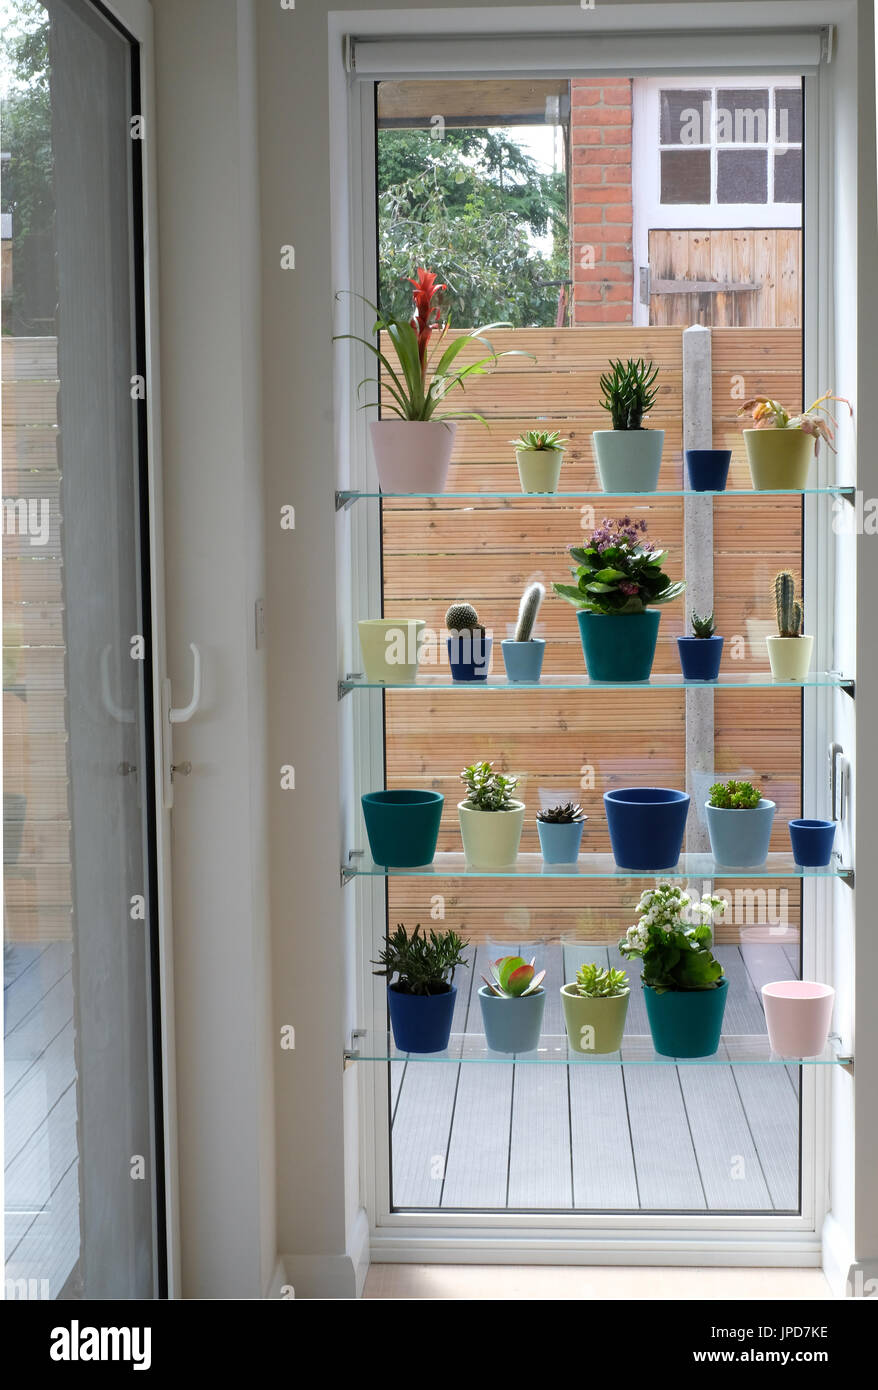 Window Display Of A Variety Of Cactus And Succulent Plants